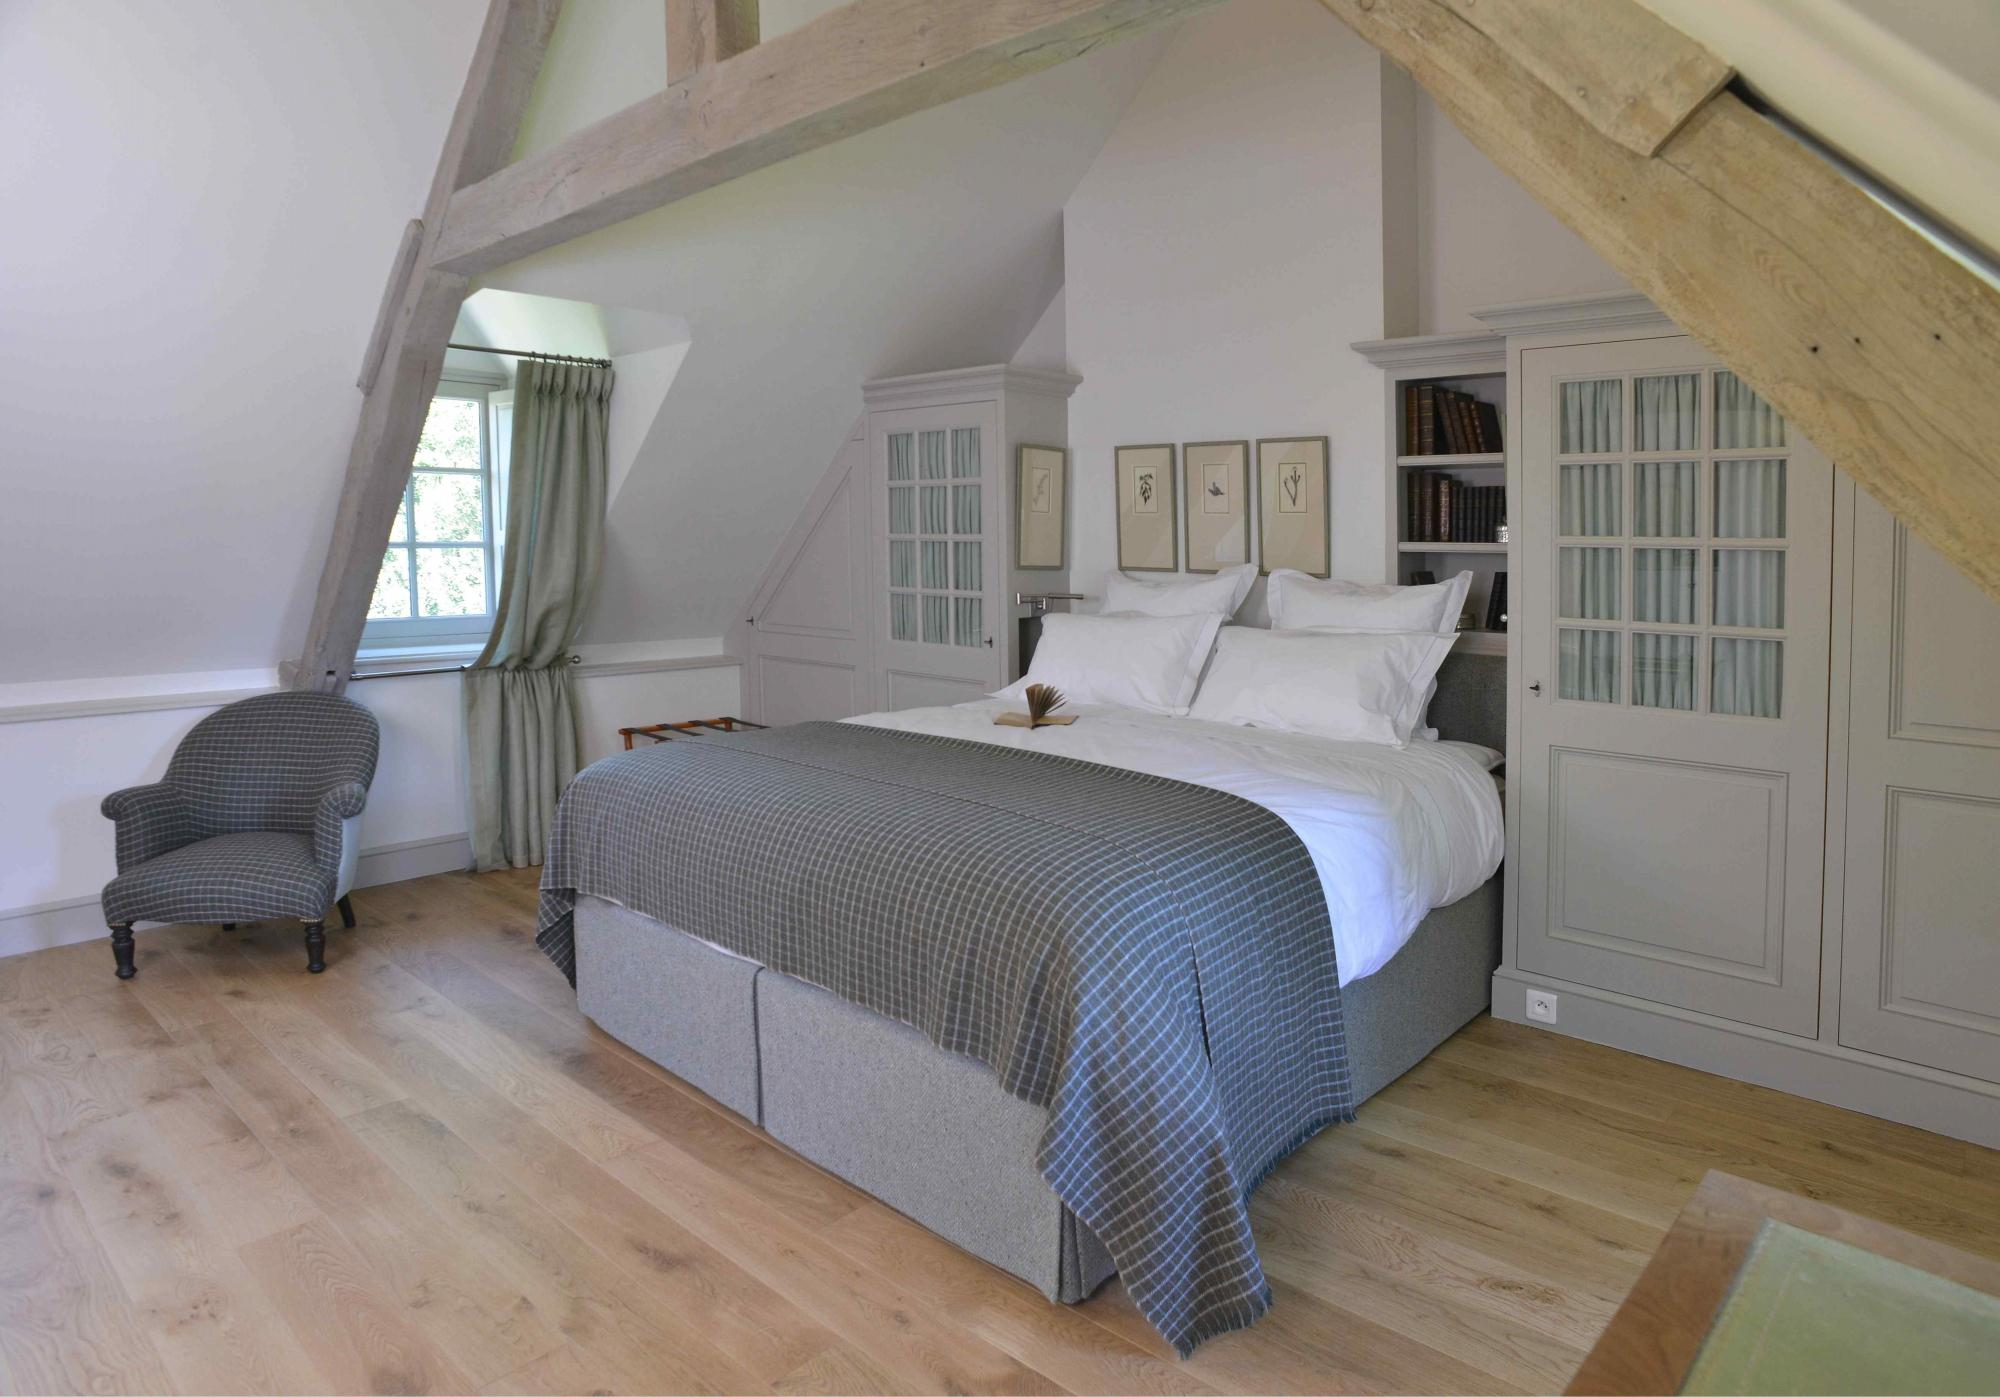 Chambres d 39 hotes le clos de grace honfleur france reviews tripadvisor for Chambre dhotes luxe normandie